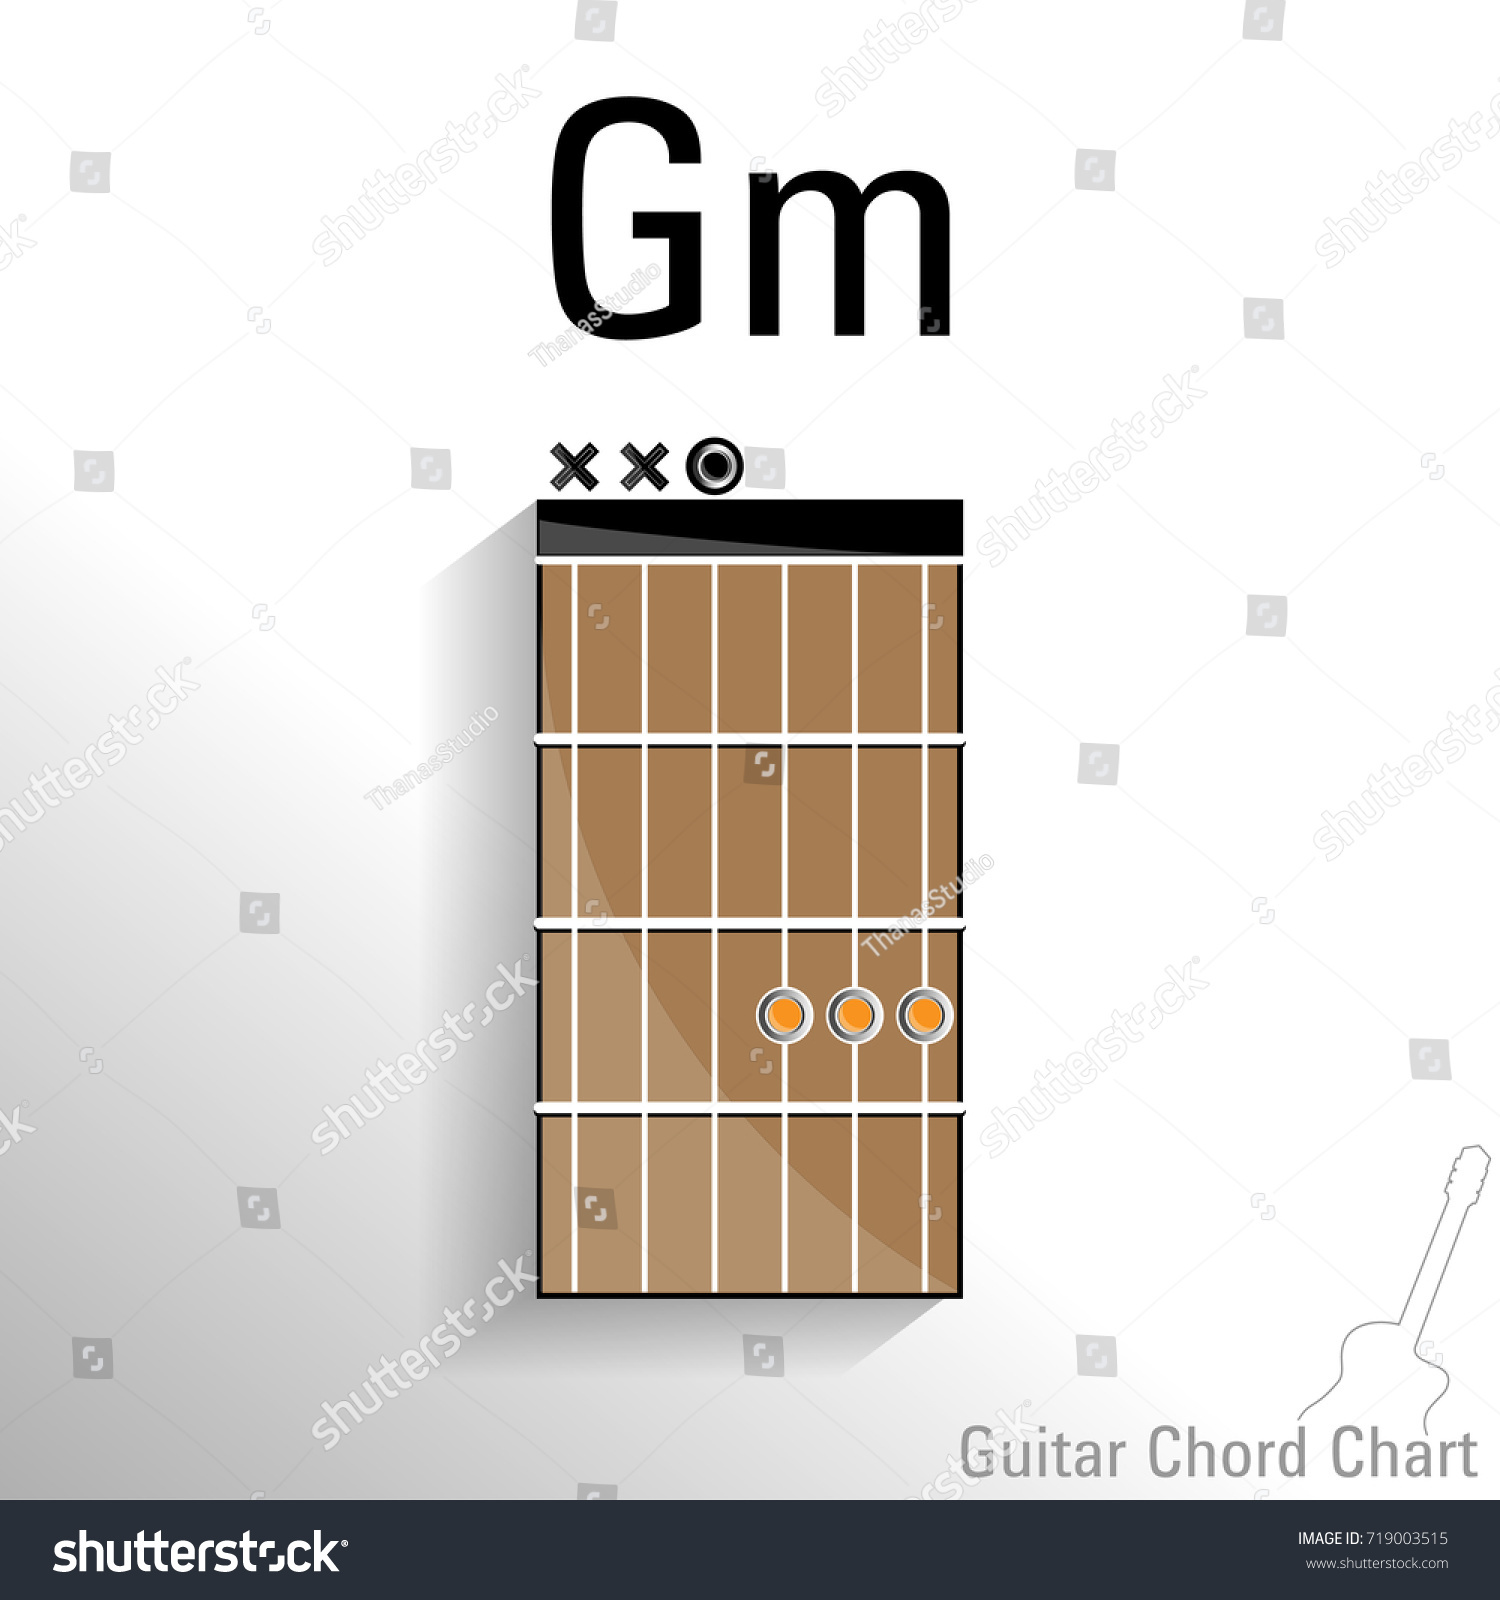 Guitar Chord Gm Chart Vector Design Stock Vector Royalty Free